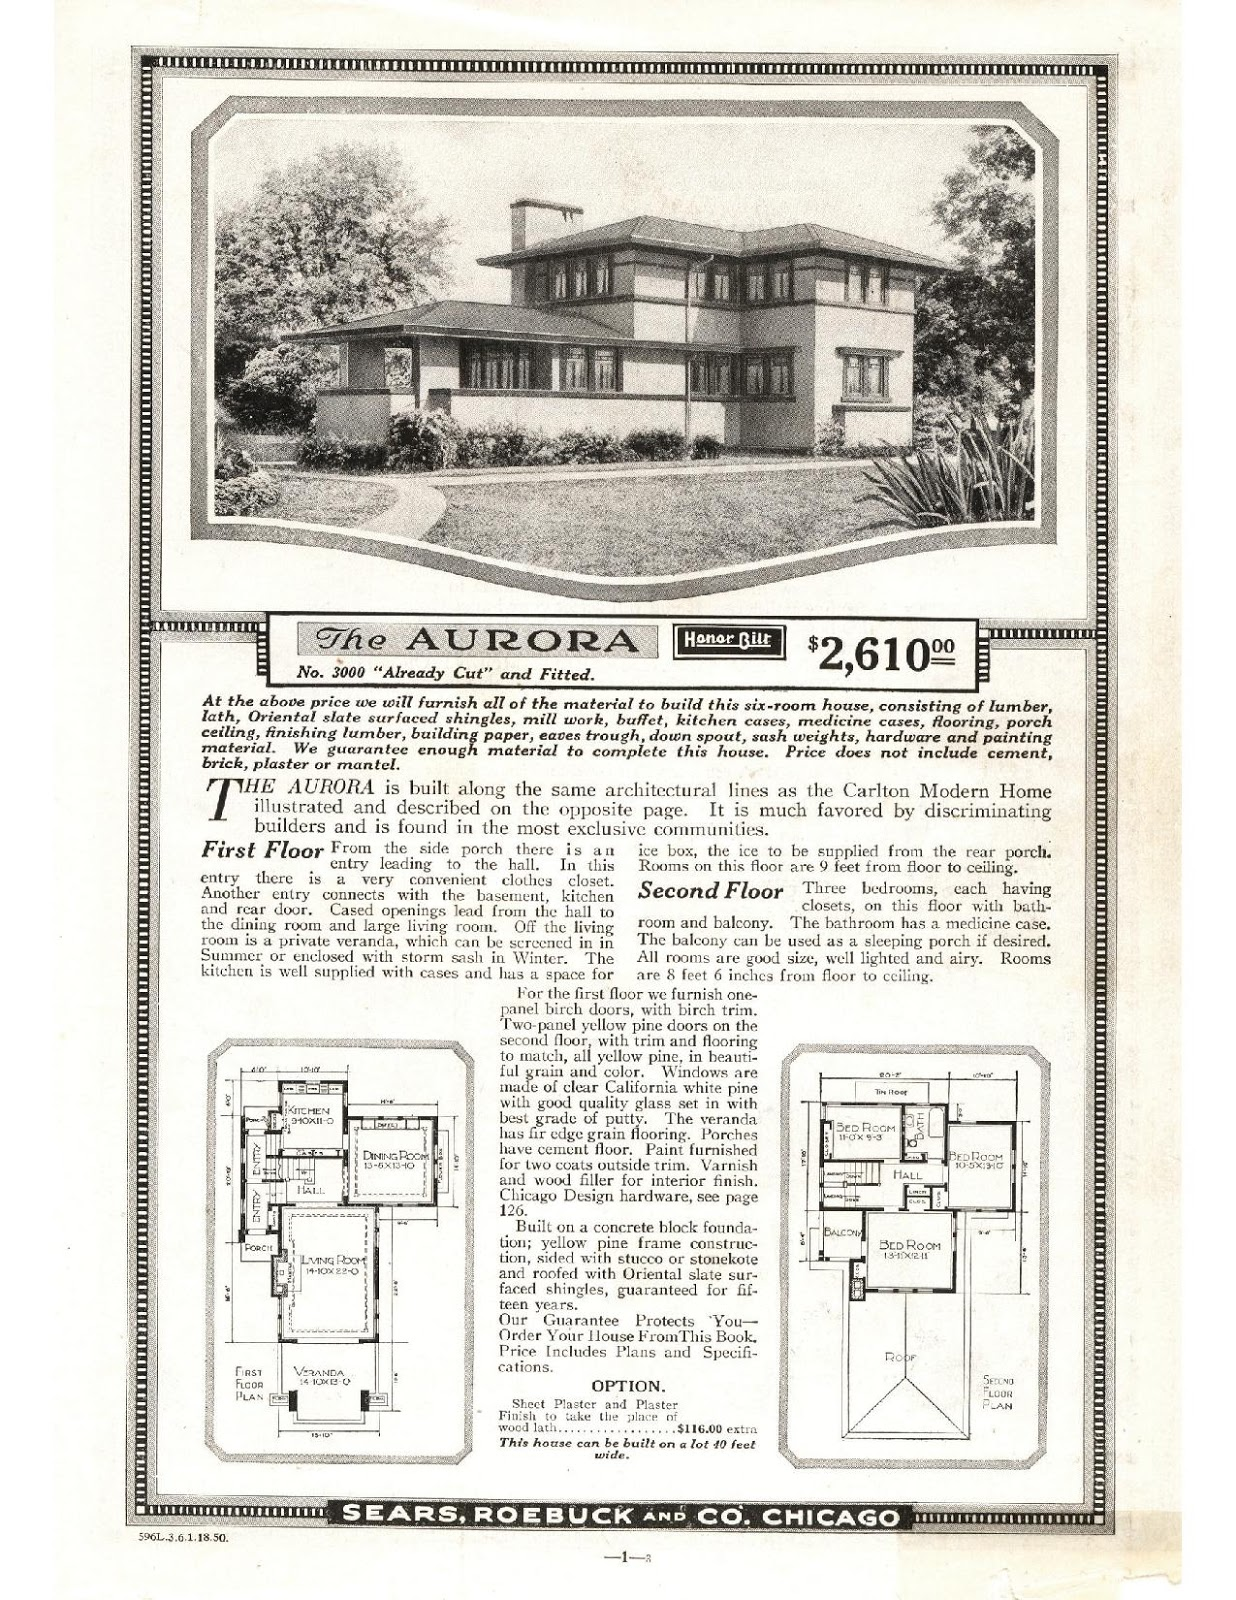 We start with the aurora the earlier version was only offered in 1918 and although there was another house with the same style offered that year it didnt